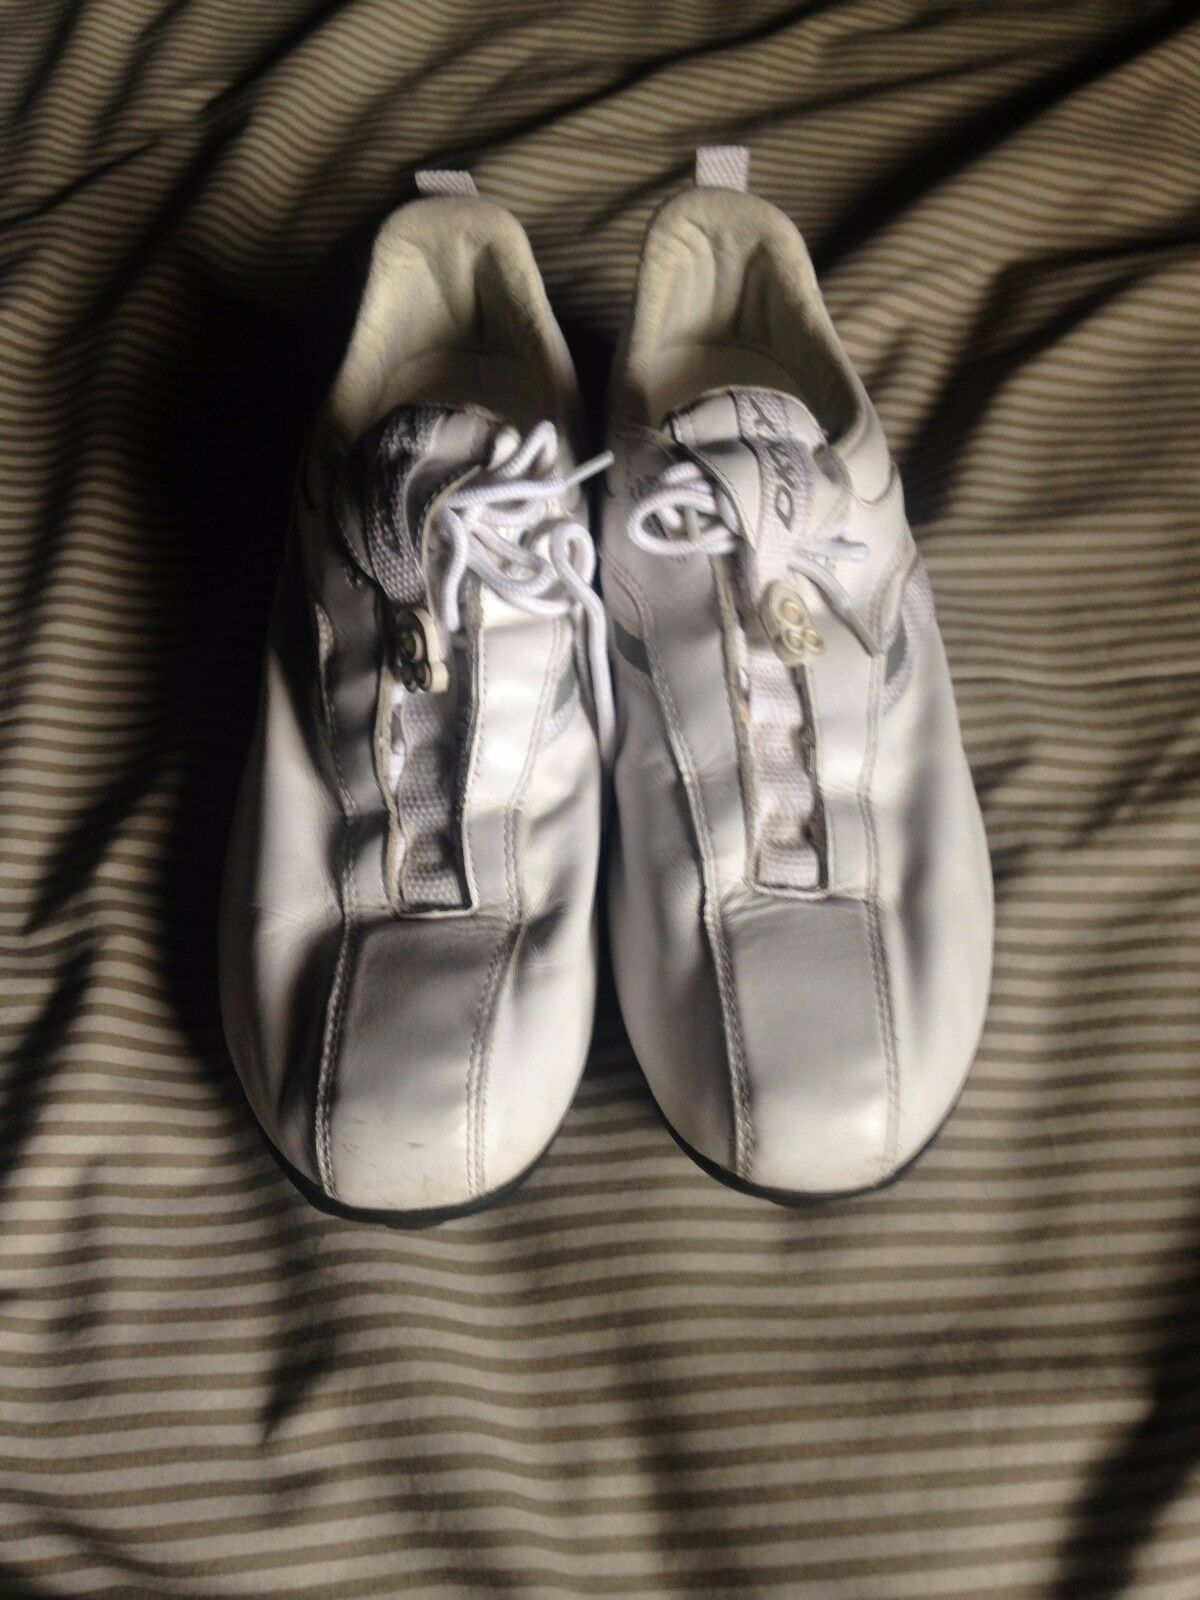 DKNY Leather White Fashion Sneakers Size 10